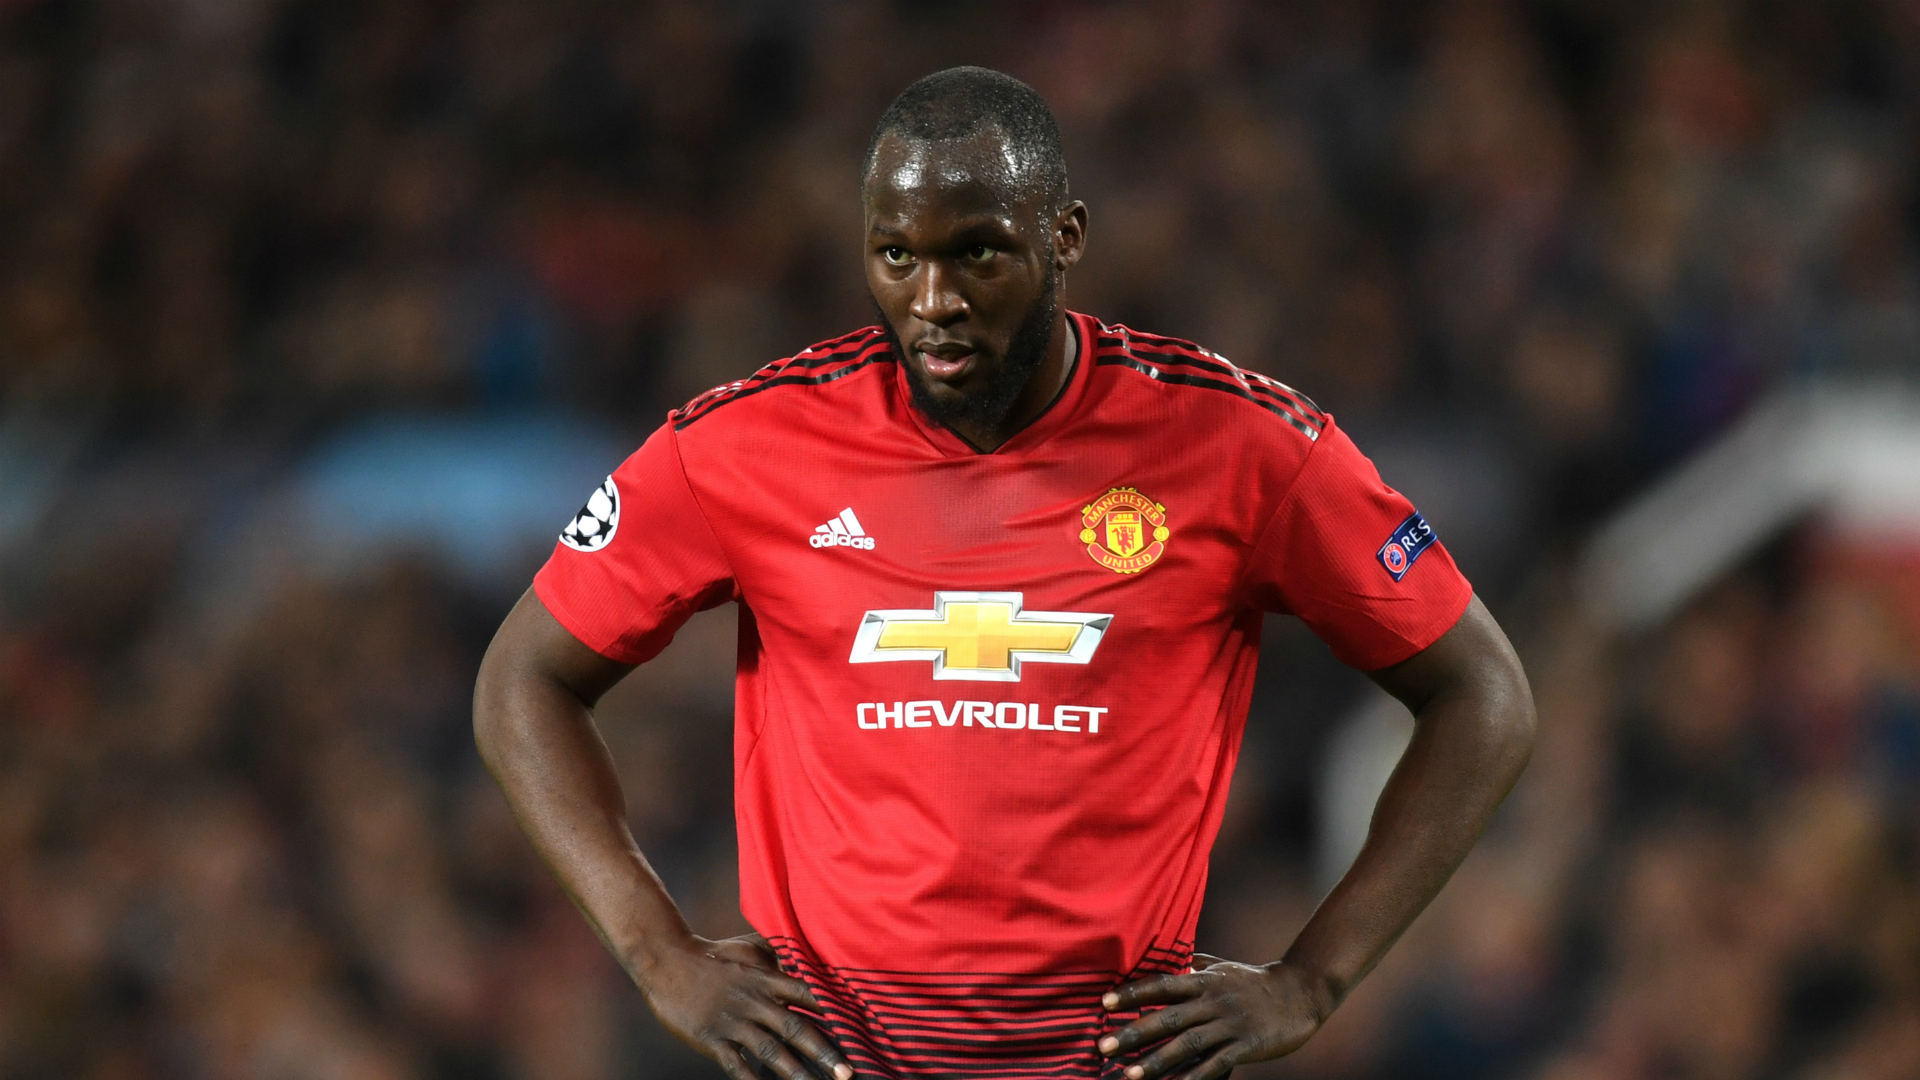 Manchester United are coping just fine without Inter target Romelu Lukaku, according to Ole Gunnar Solskjaer.